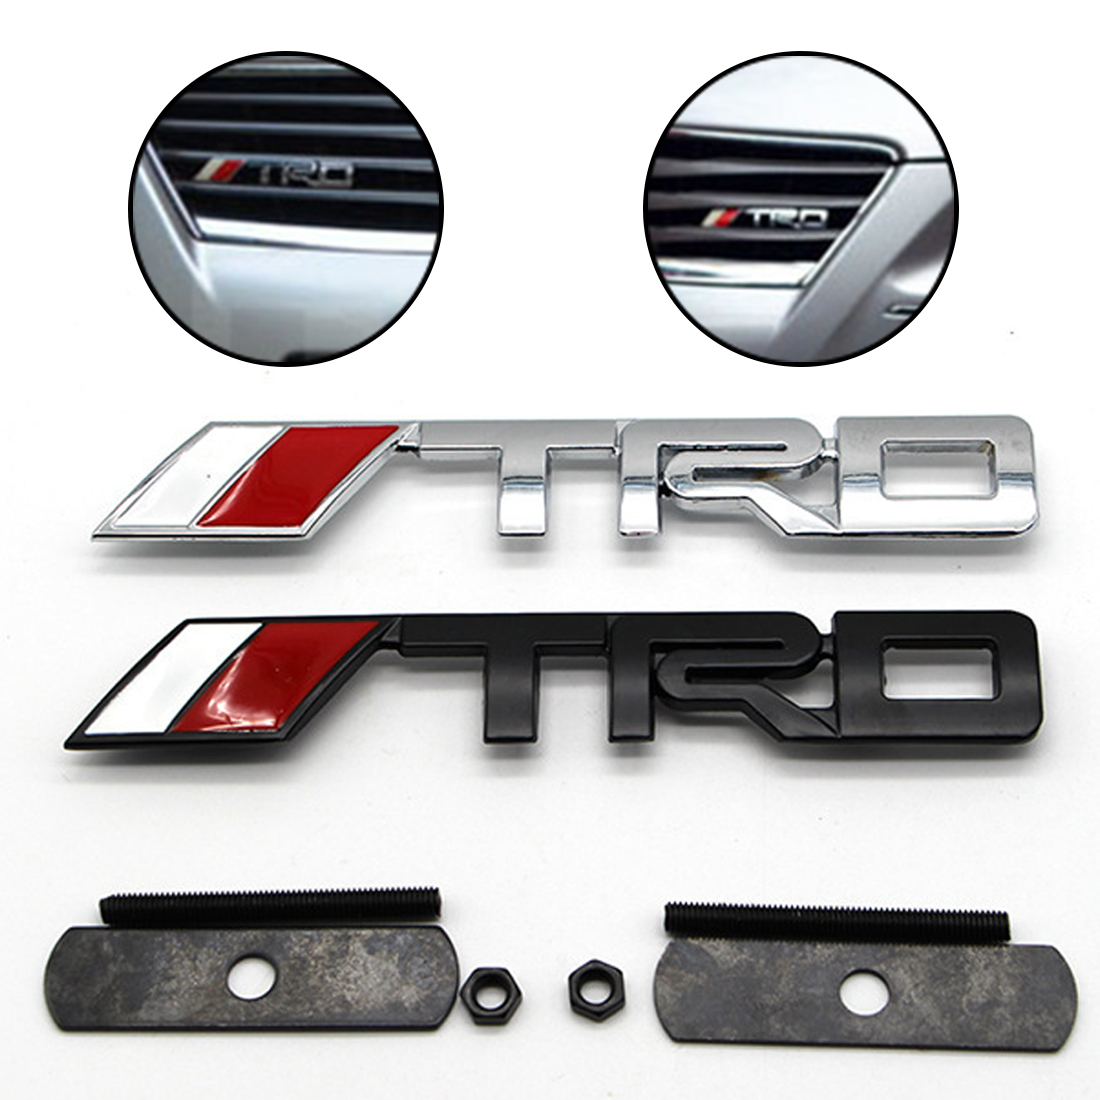 Dewtreetali TRD Metal Emblem for toyota Racing Car Logo JDM Hood Badge 3D TRD Grille Emblem badge Sticker 3d metal auto car performance badge decal fender emblem for trd sports racing